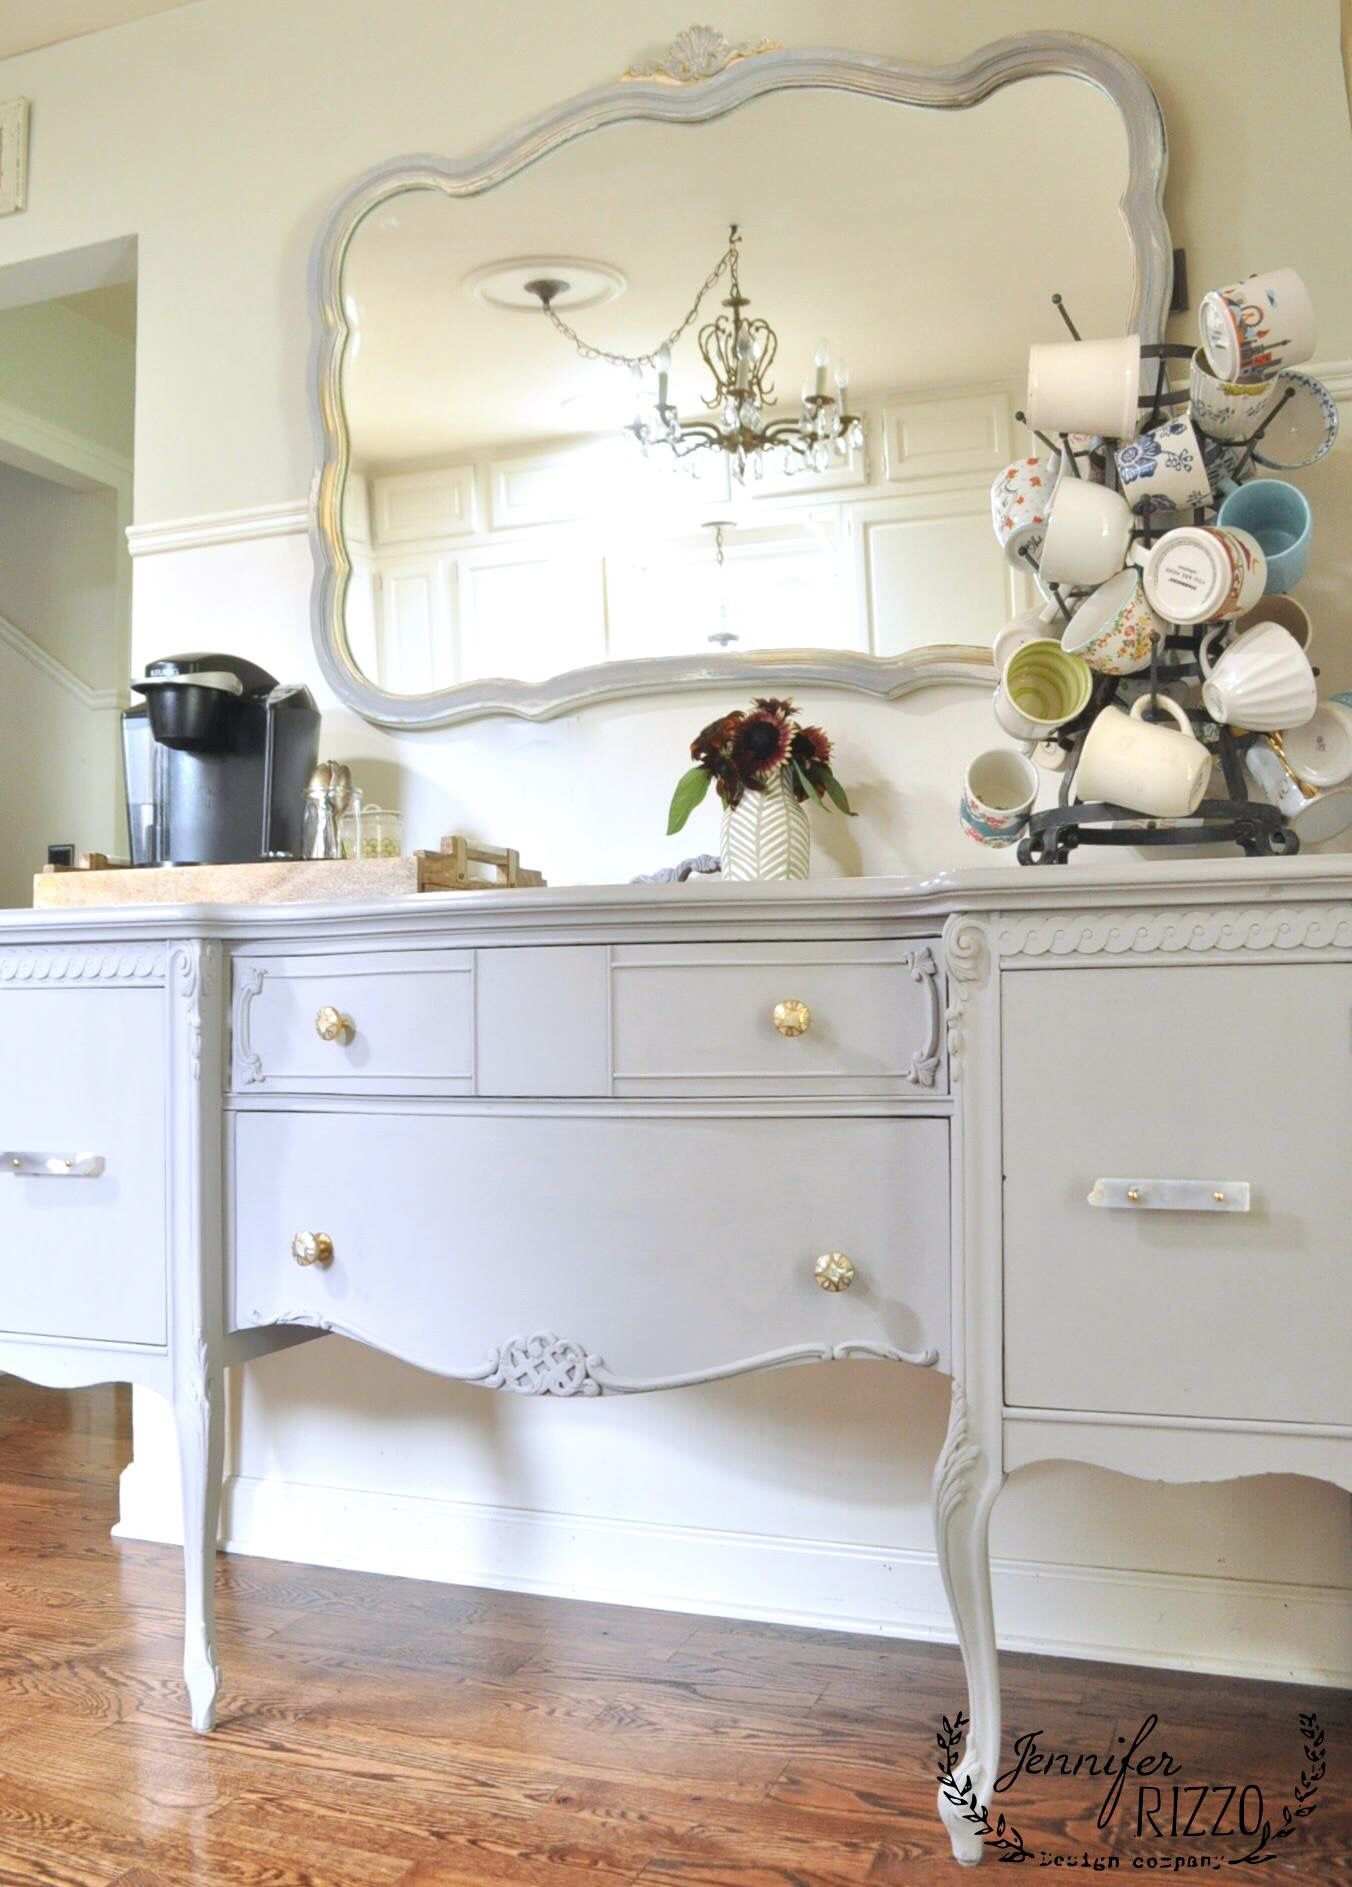 Pin by Cindy Avalos on Painted furniture | Pinterest | Paint ...